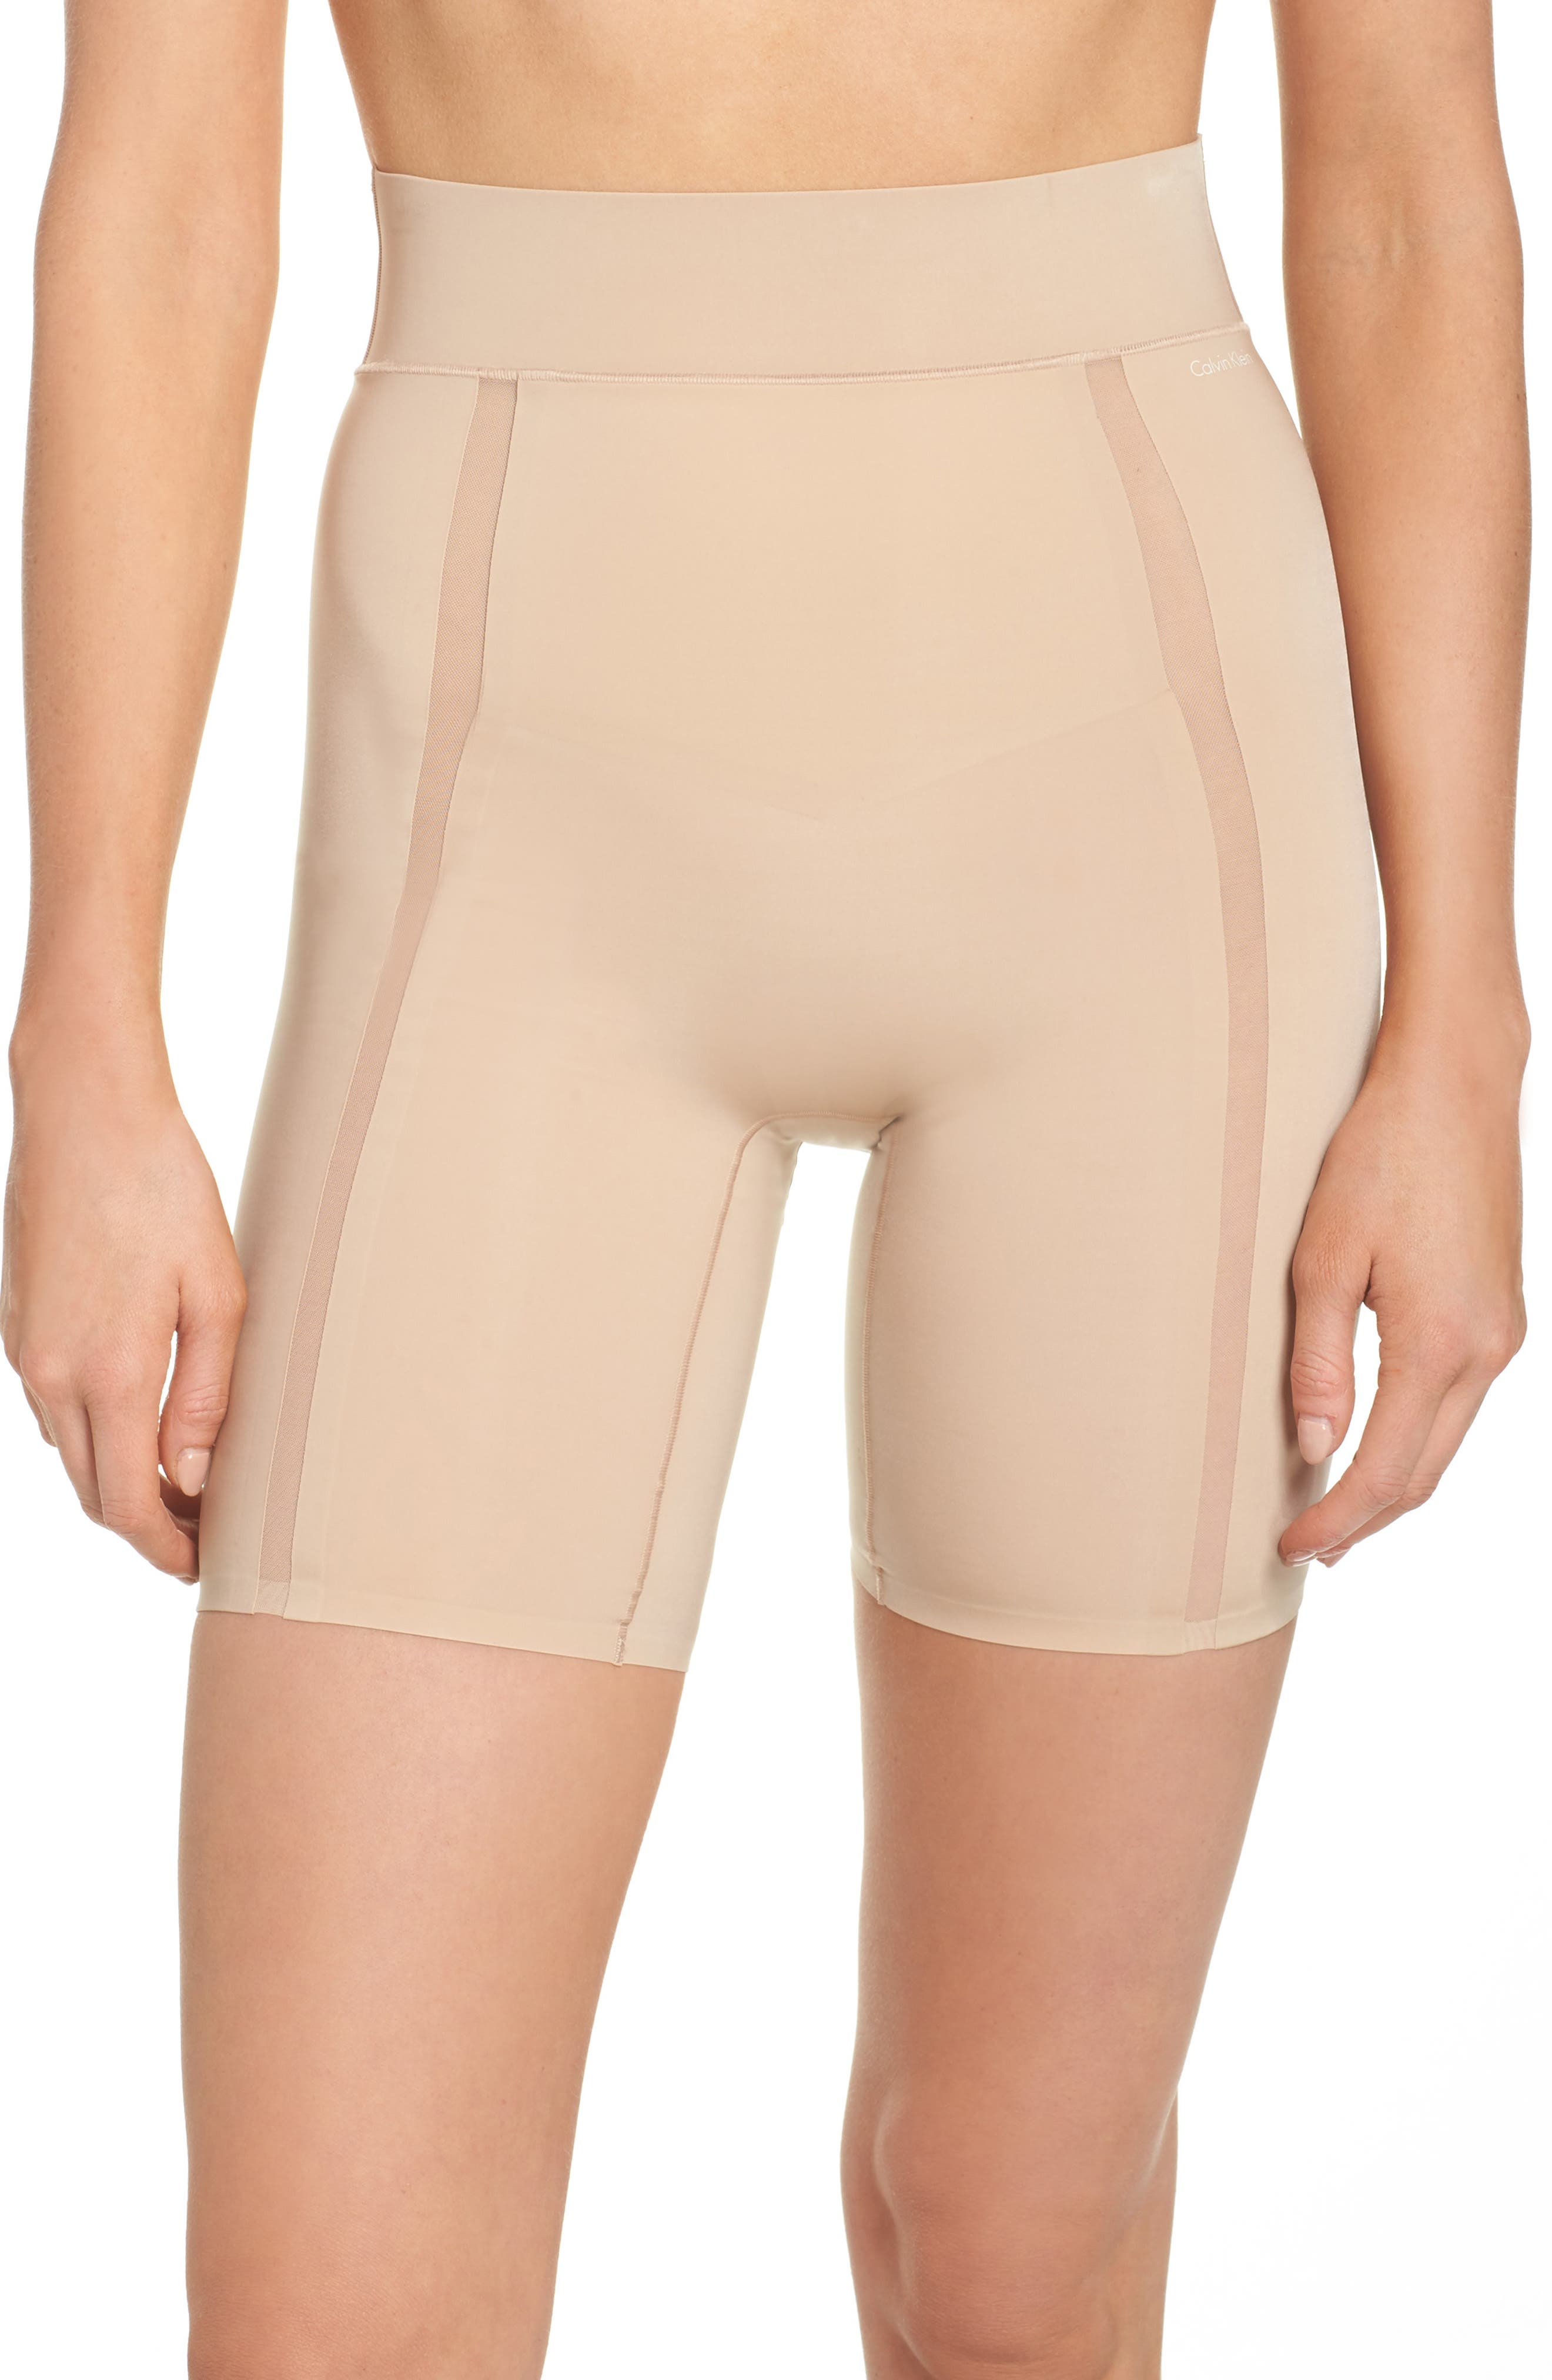 Calvin Klein Sculpted Shapewear Thigh Shaper